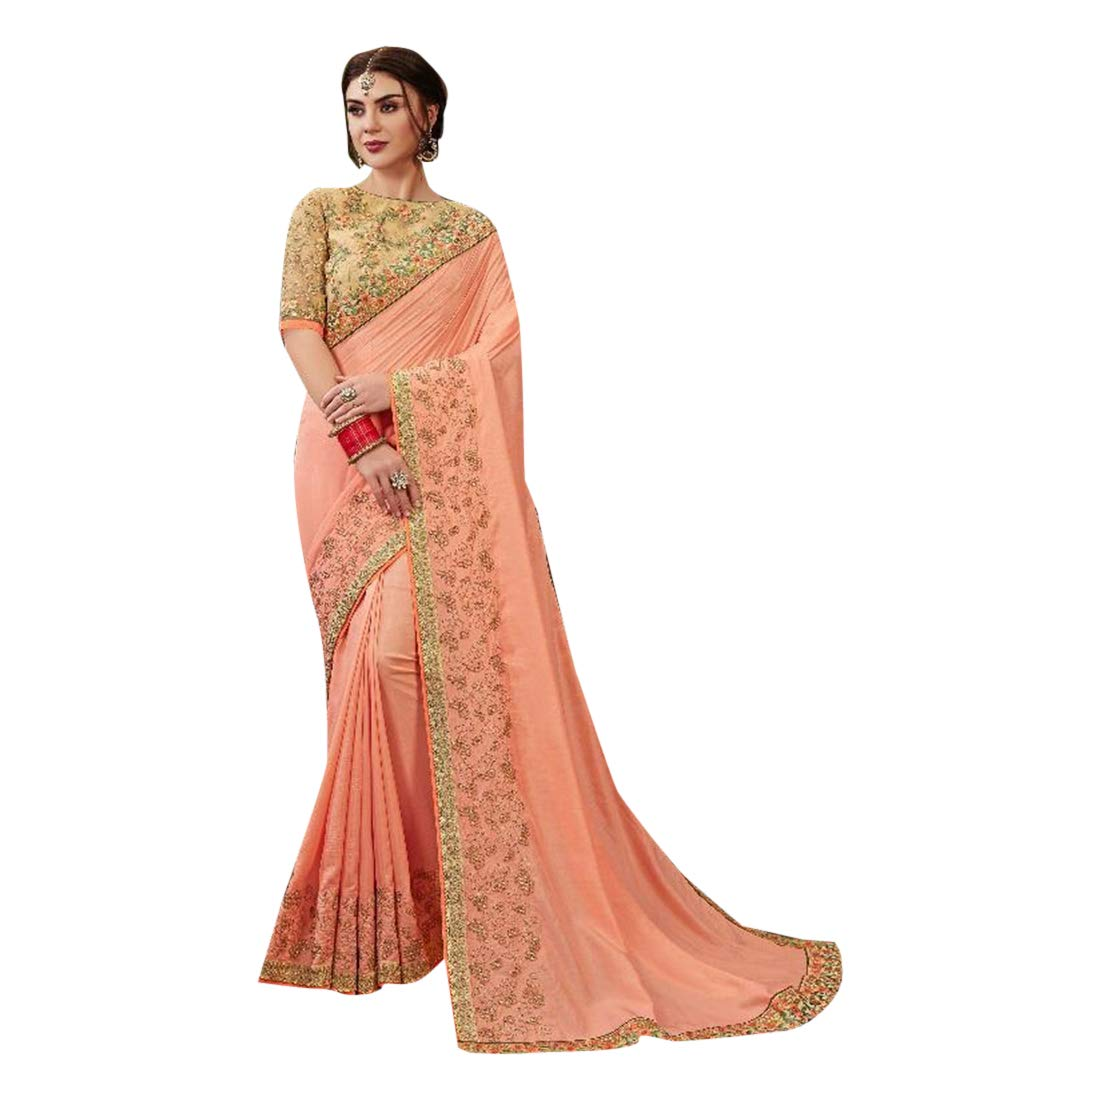 Peach Designer Cutwork Embroidery Dola Silk Sari with Blouse Ethnic Indian Saree for Women Party wear 7721